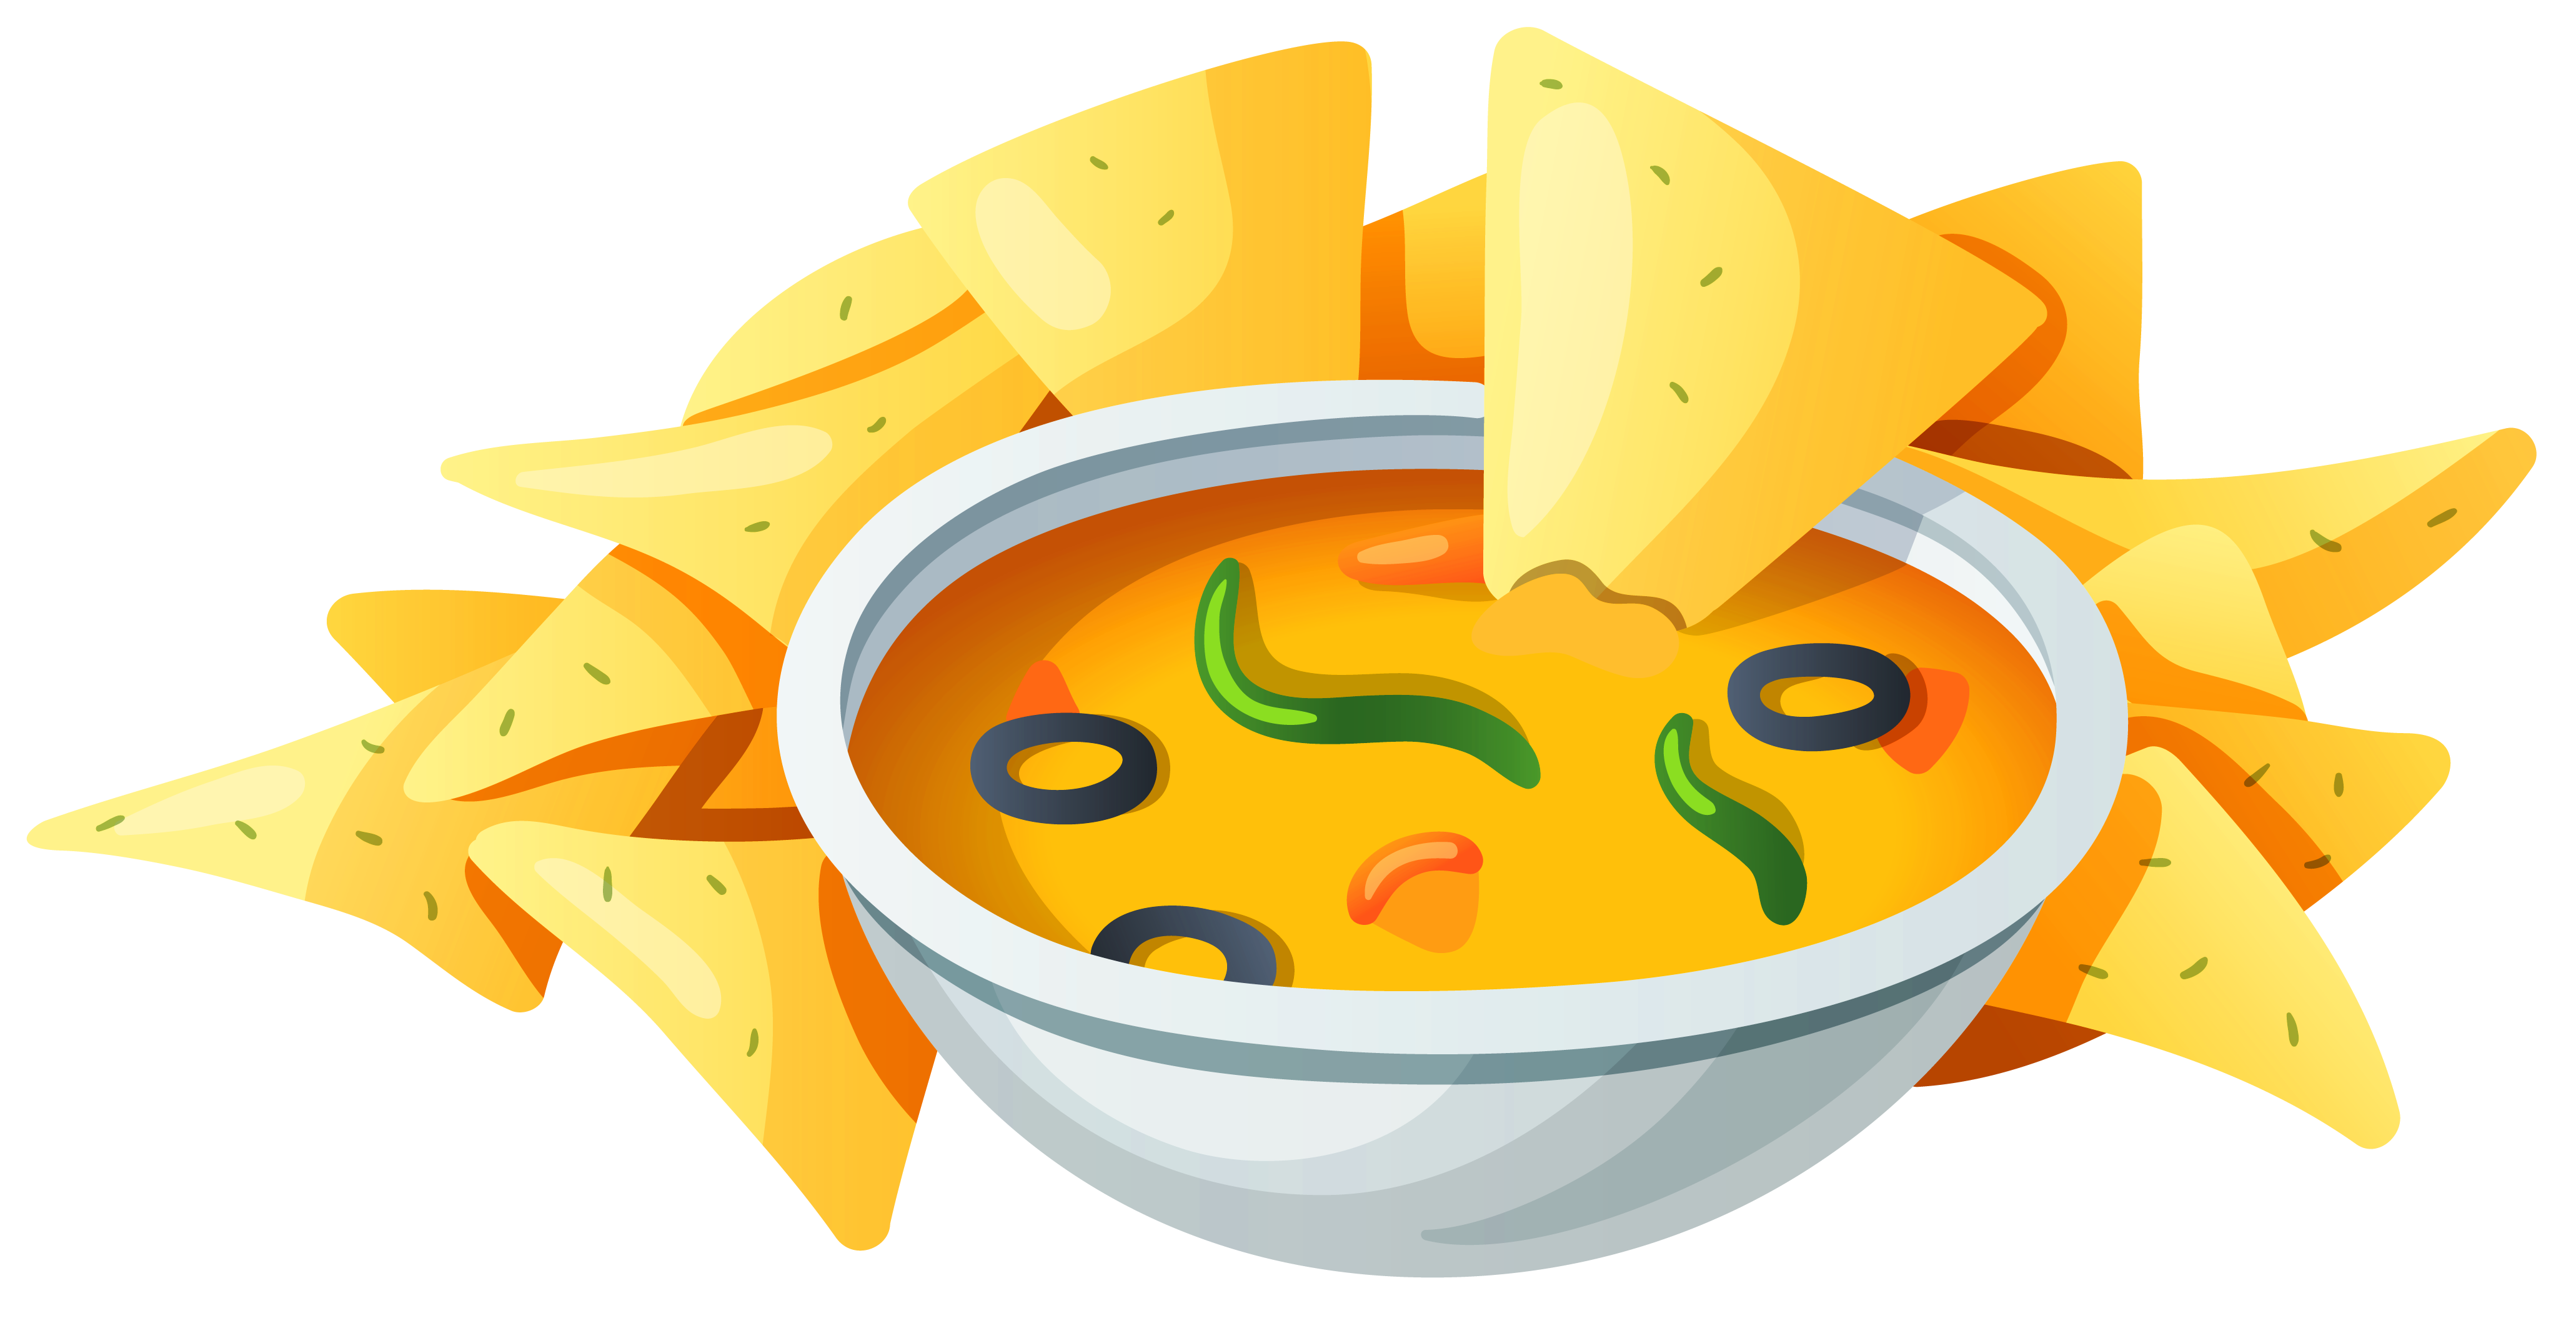 Mexican clipart food png library download alt=No background clipart mexican food title=No background ... png library download